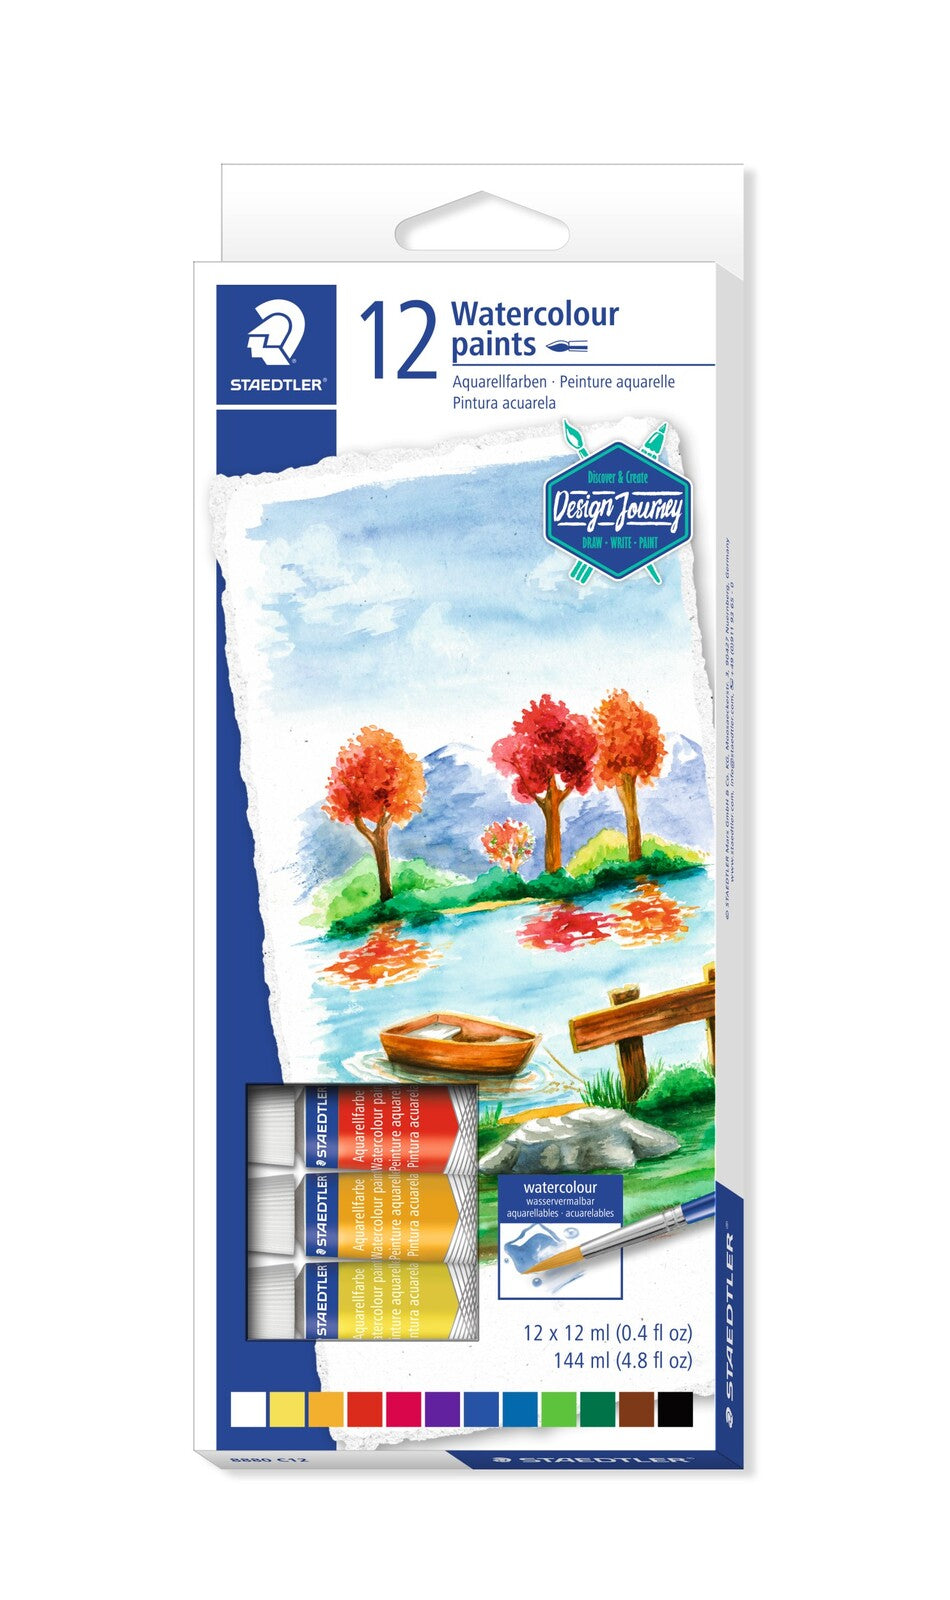 Staedtler Watercolour Paints 12 colours - Me Books Store